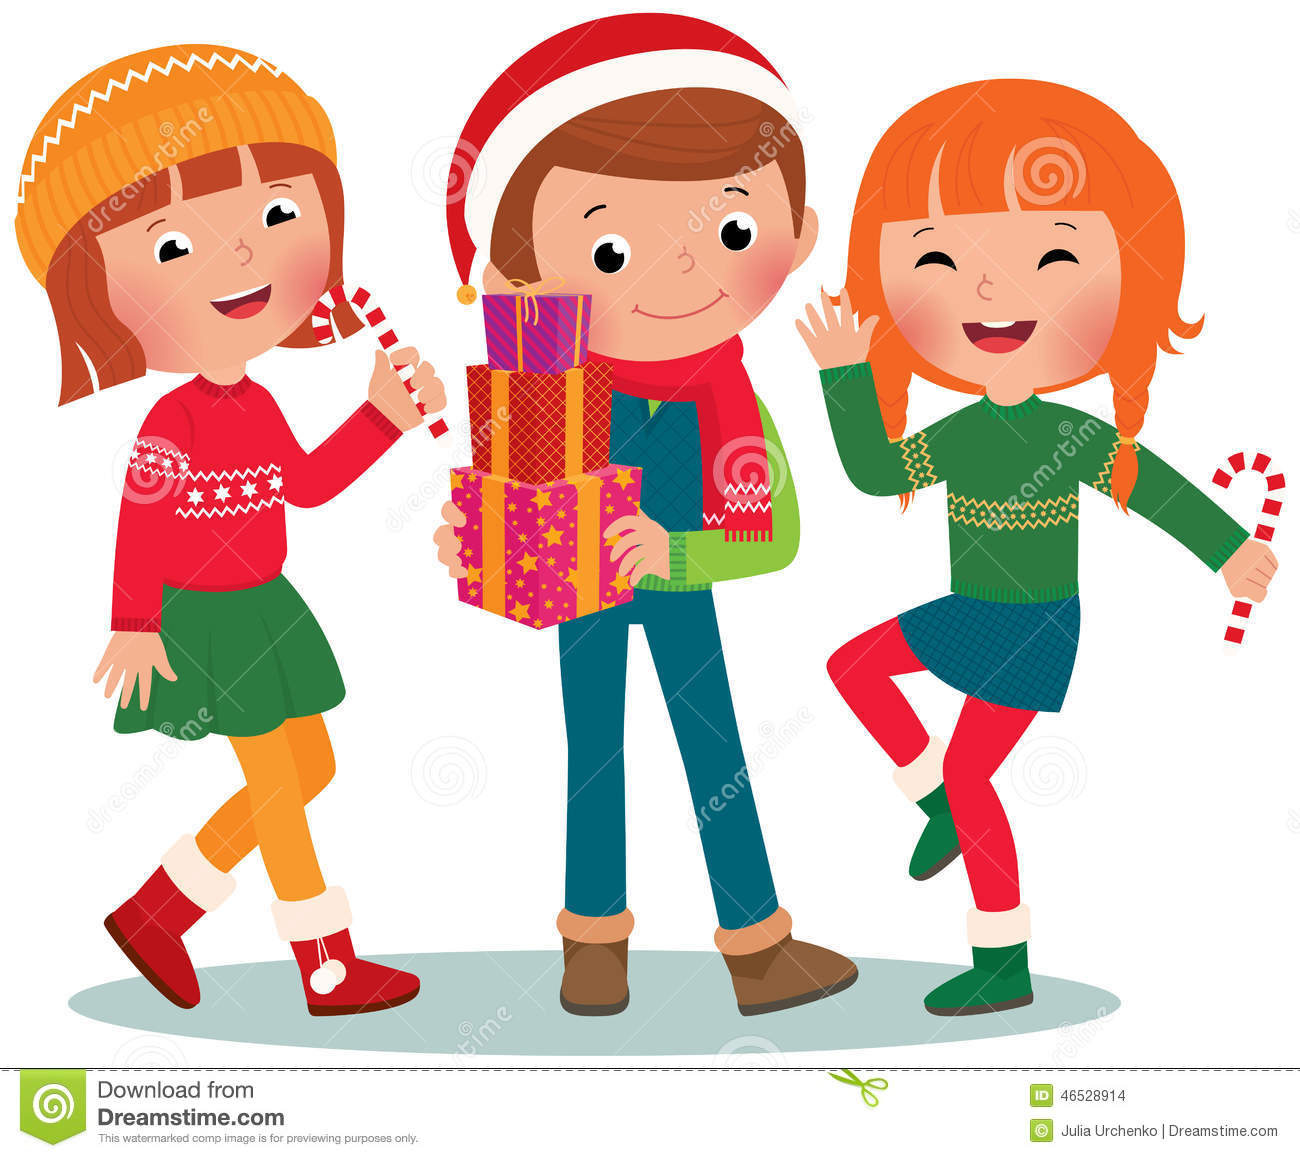 Christmas Children Party: Children Christmas Party Stock Vector. Illustration Of